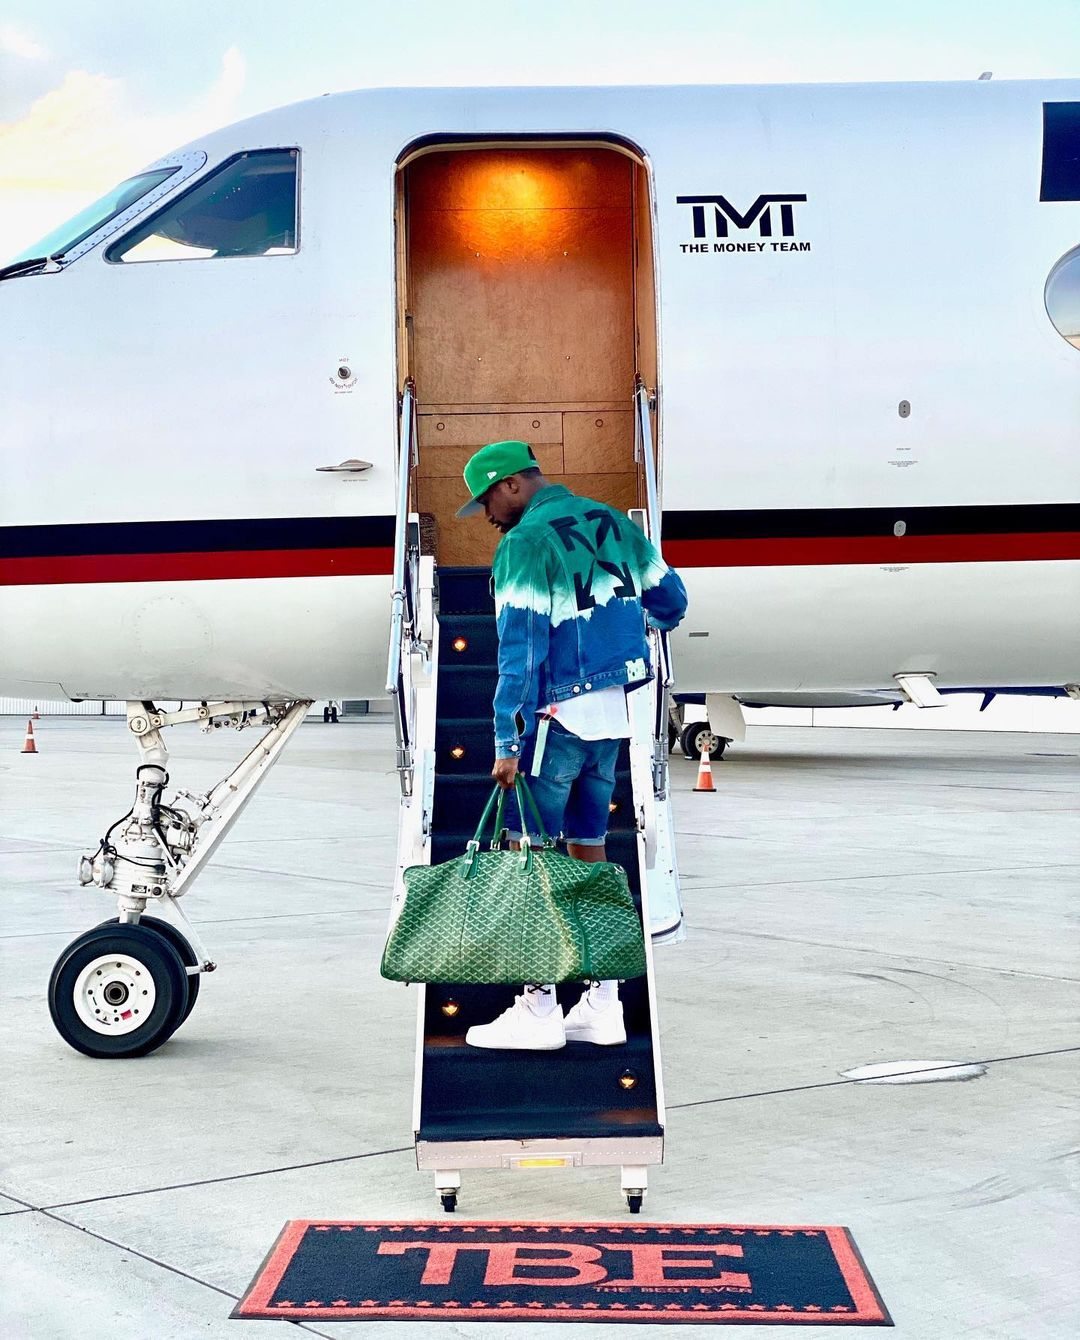 SPOTTED: Floyd Mayweather Boards His TMT Jet